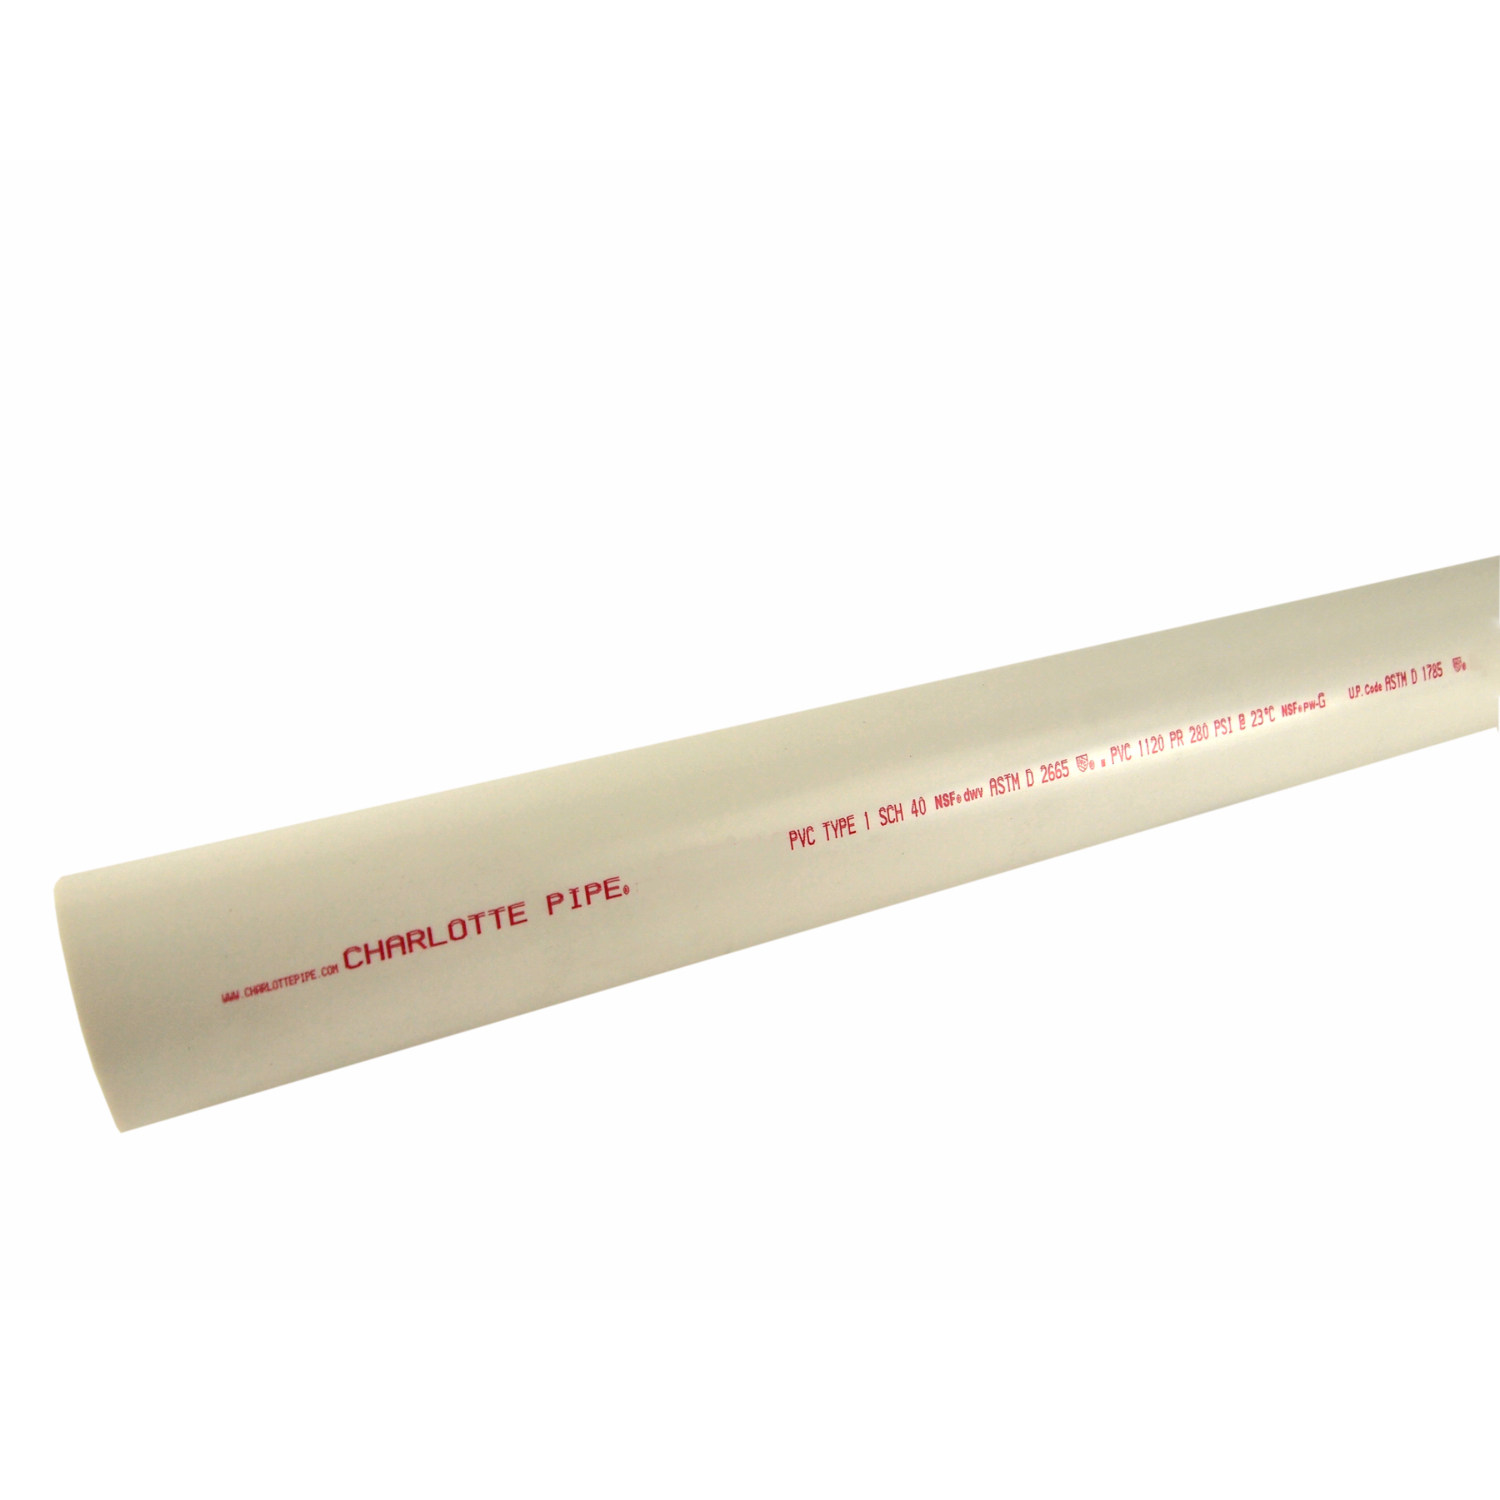 Charlotte Pipe PVC DWV Pipe 4 in. Dia. x 10 ft. L Plain & Charlotte Pipe PVC DWV Pipe 4 in. Dia. x 10 ft. L Plain End Schedule ...